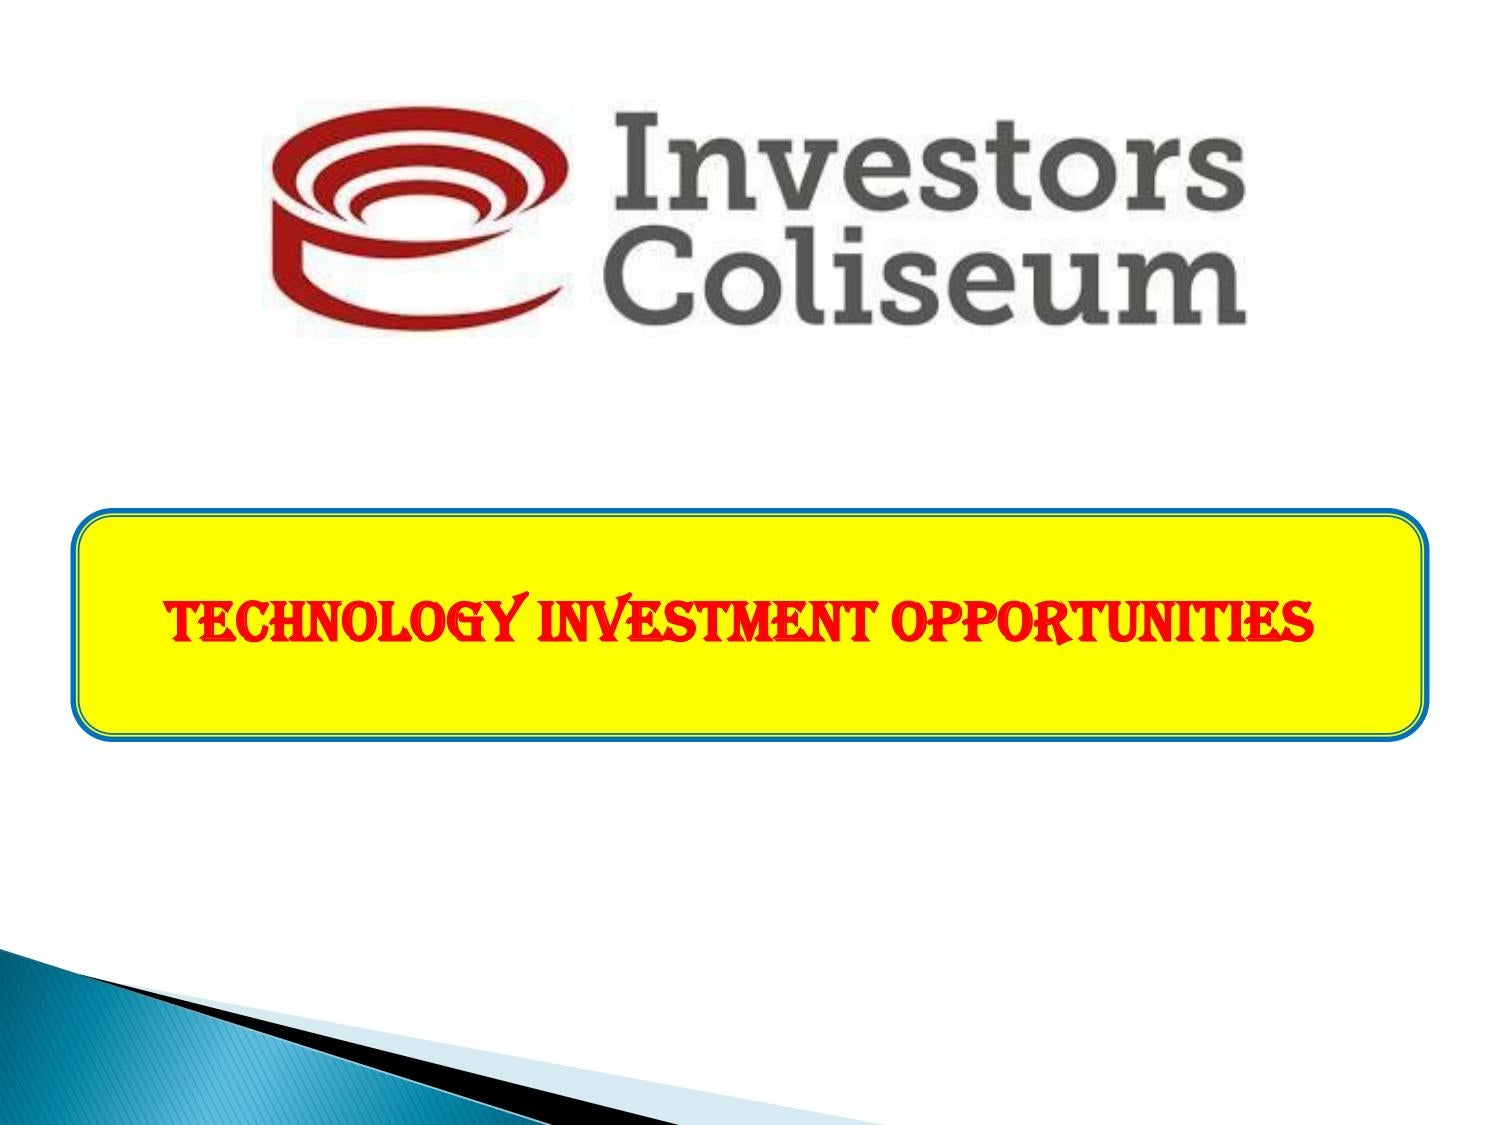 Technology Investment Opportunities